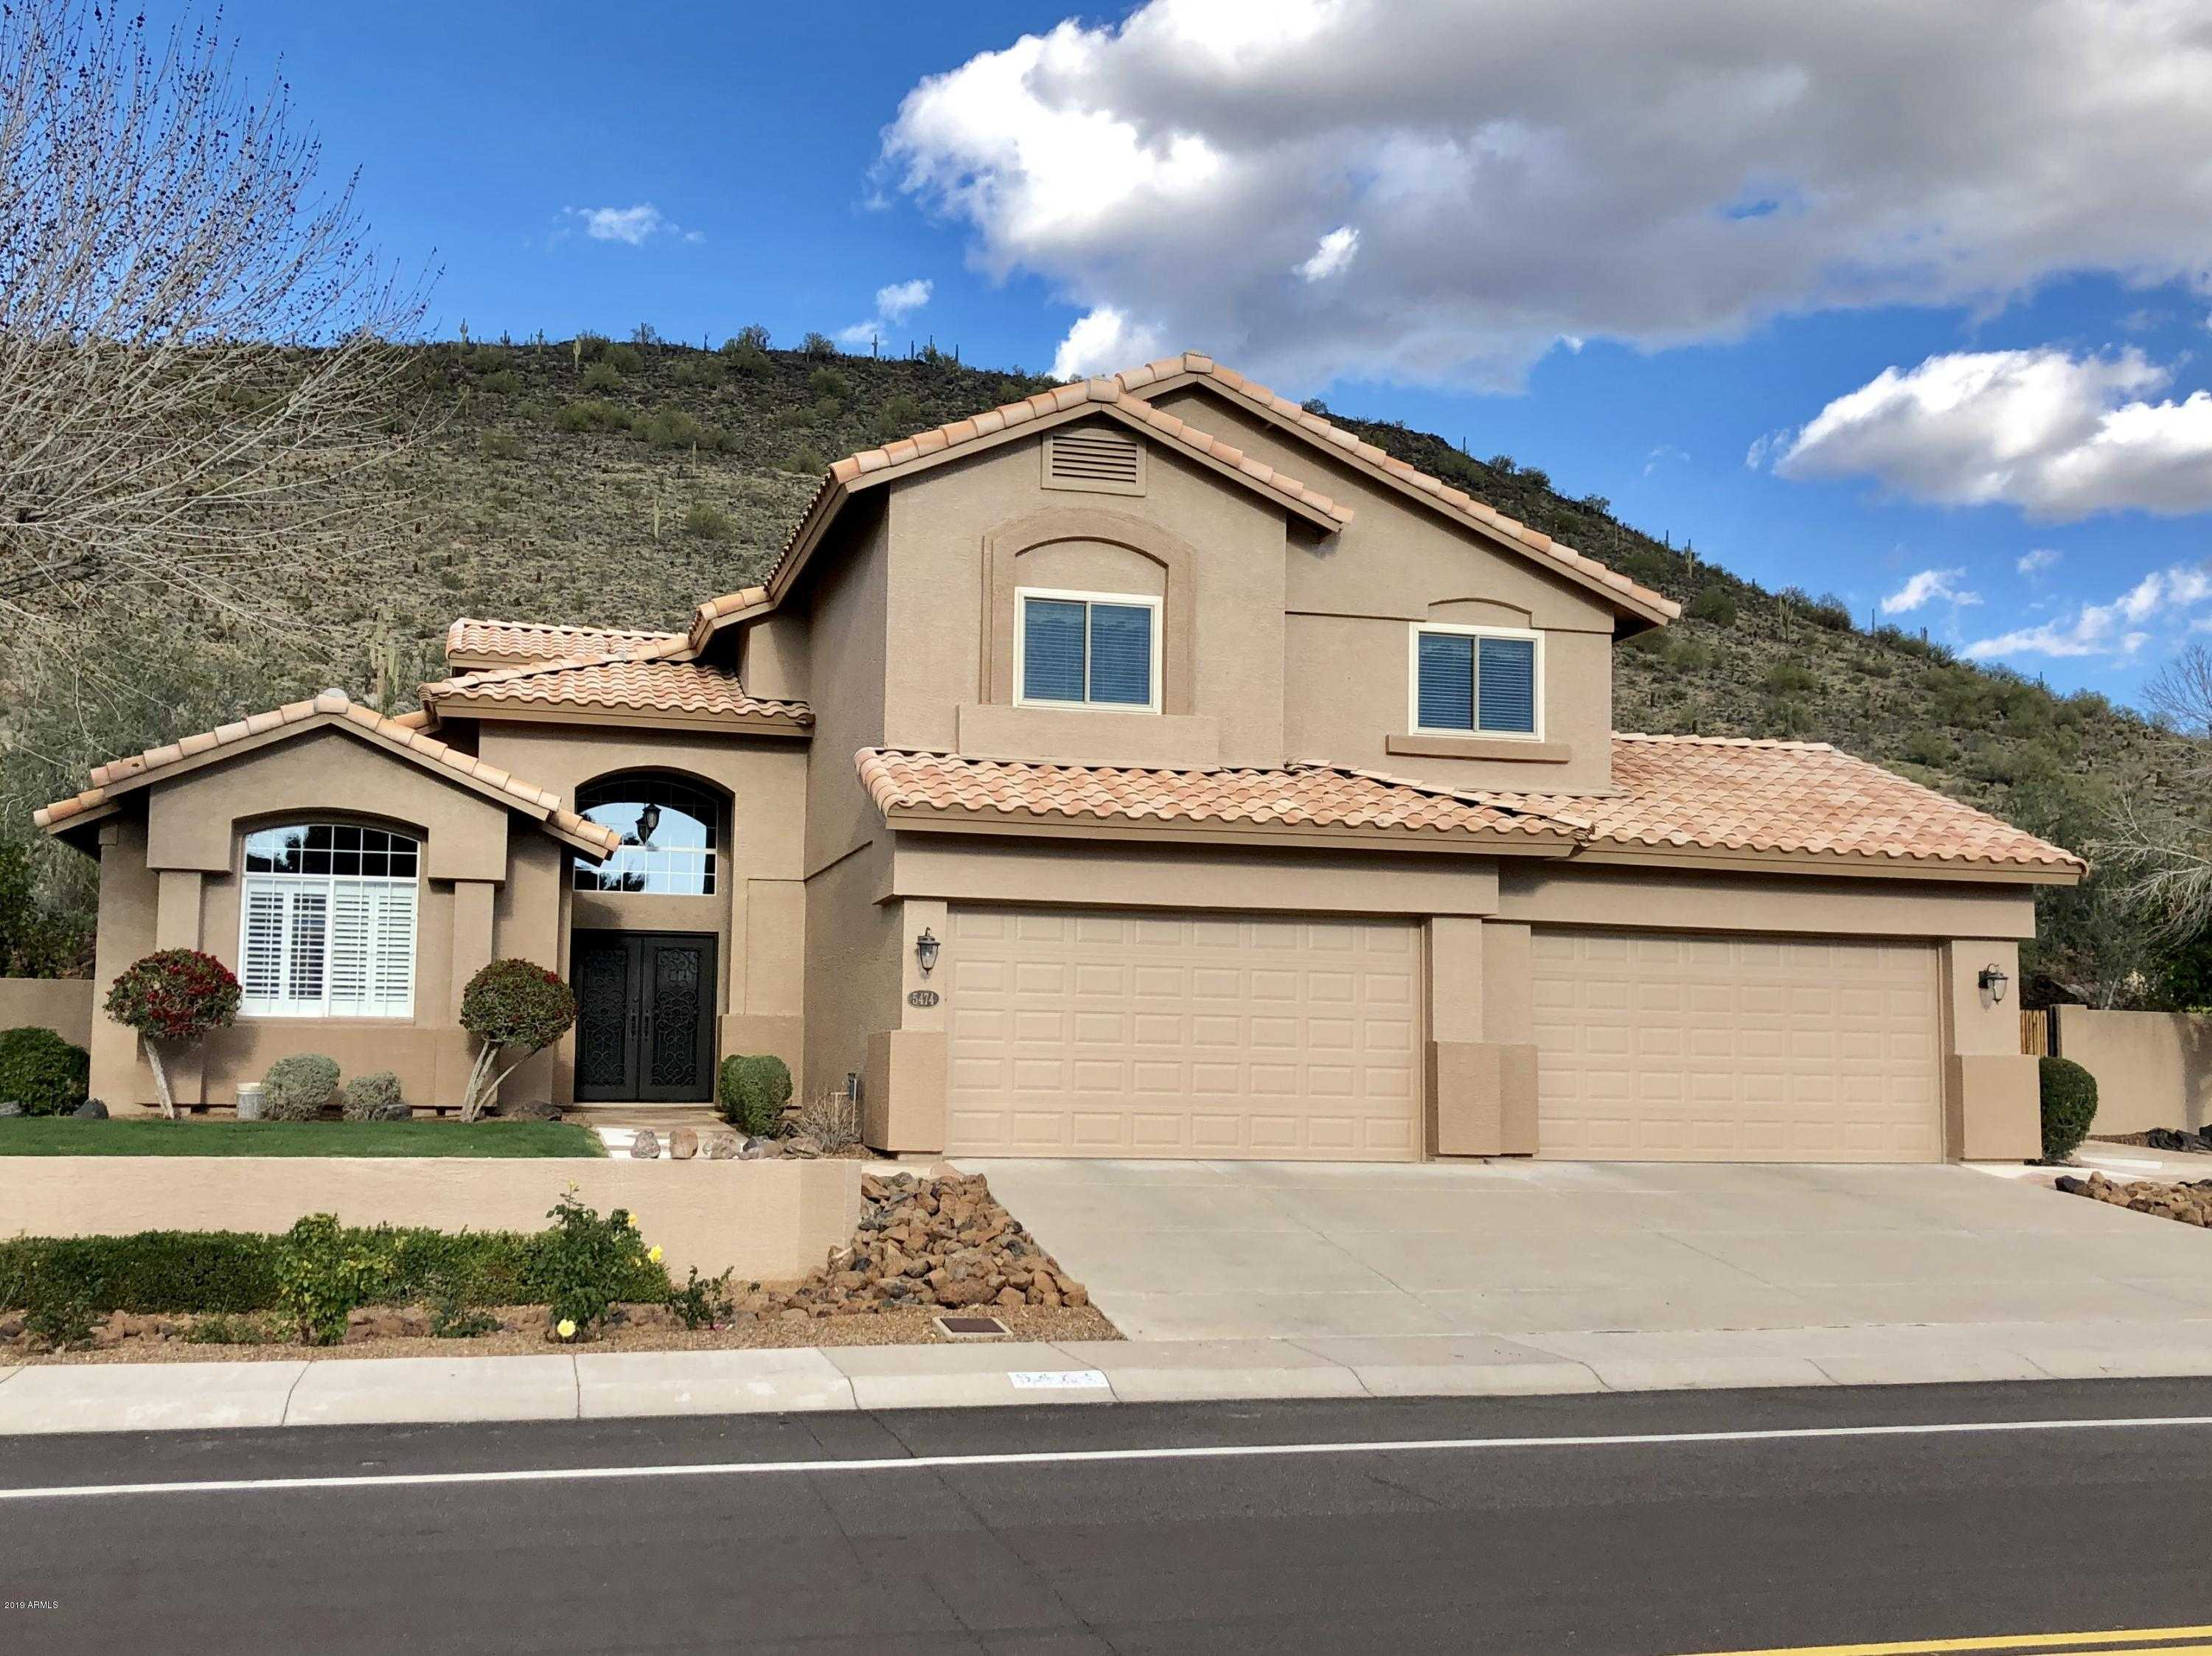 $579,900 - 5Br/4Ba - Home for Sale in Estates At Arrowhead Phase 1a, Glendale